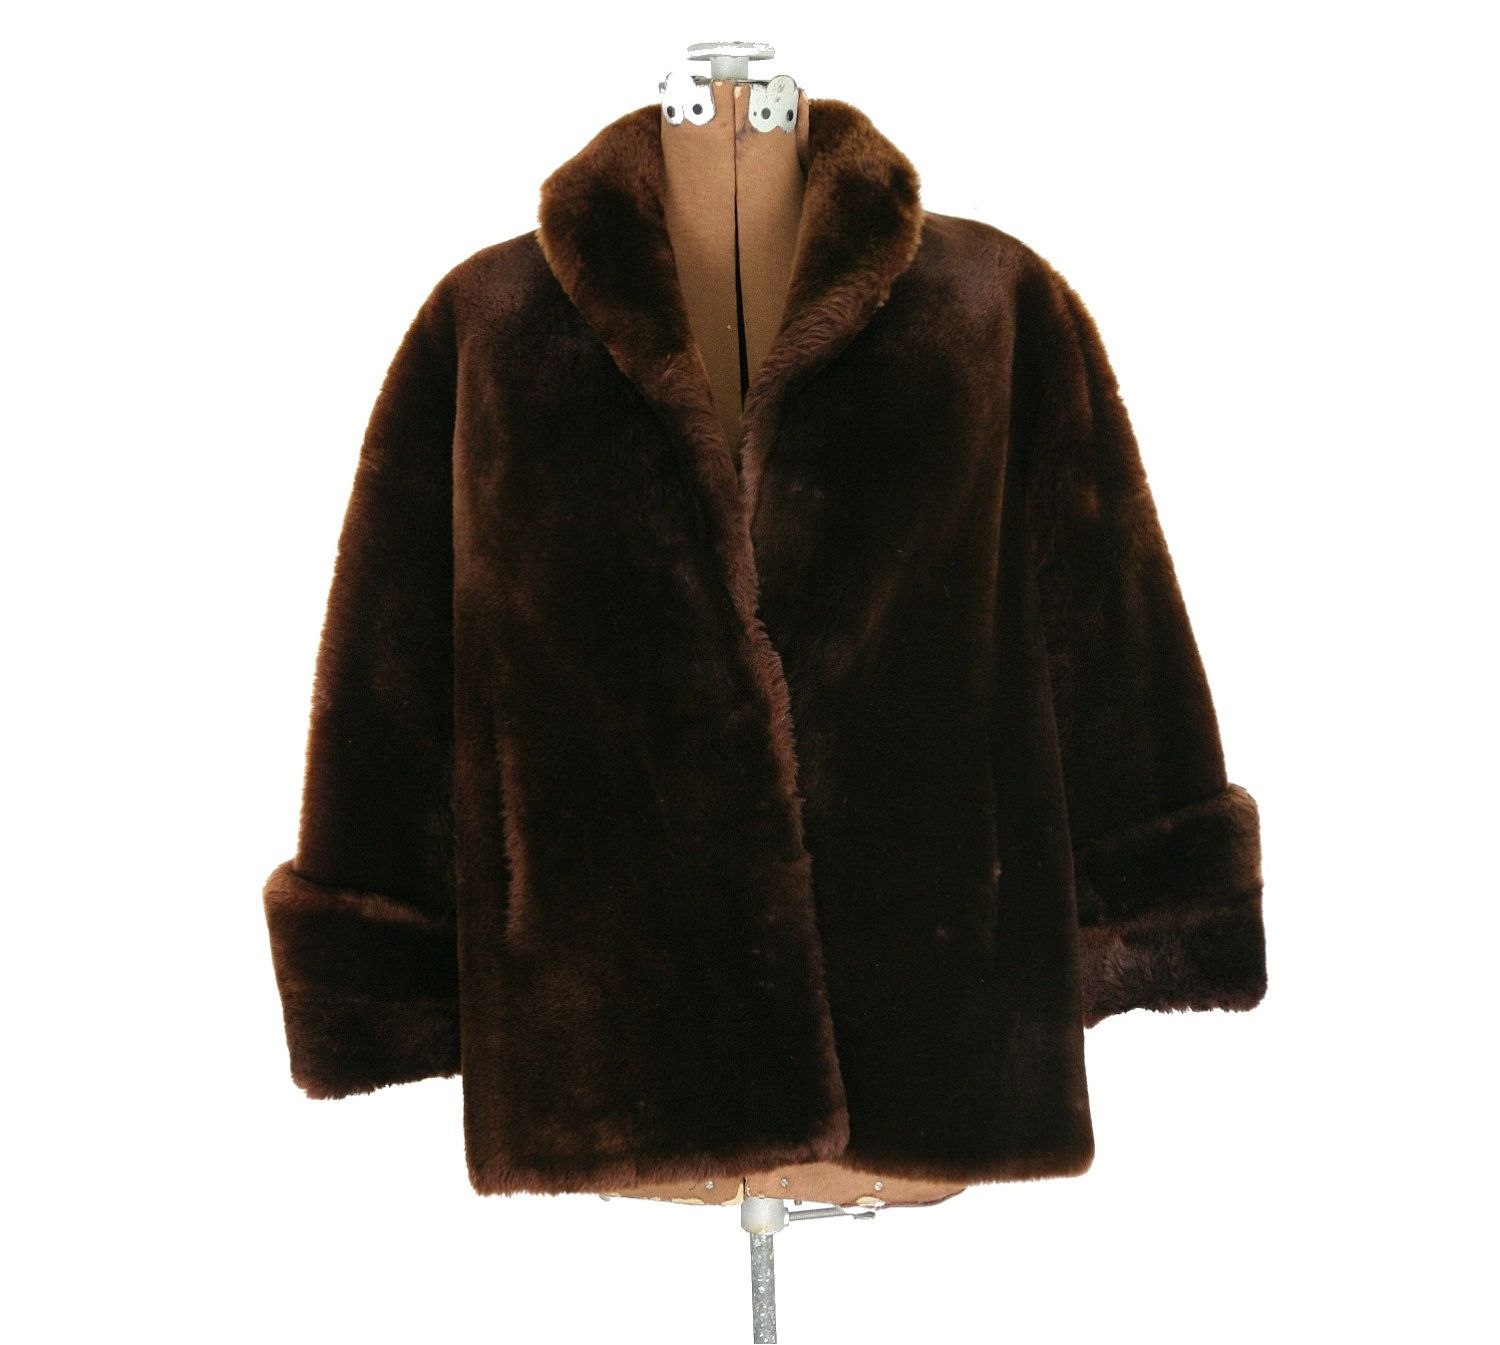 50's style Mouton jacket. Got one for Christmas at age 15. Mine black